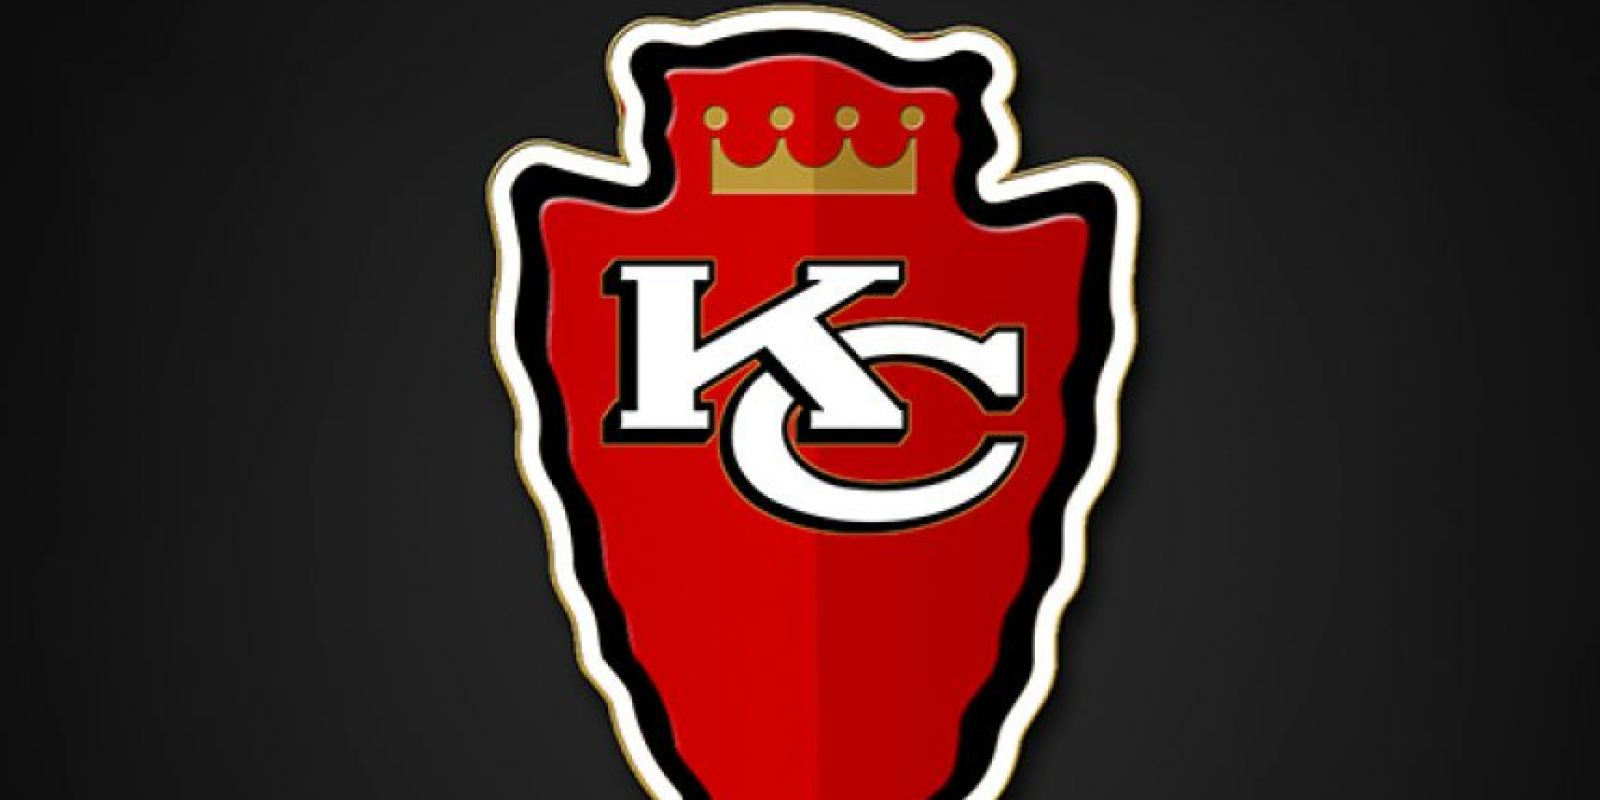 Kansas City Chiefs y Kansas City Royals Foto: DailySnark